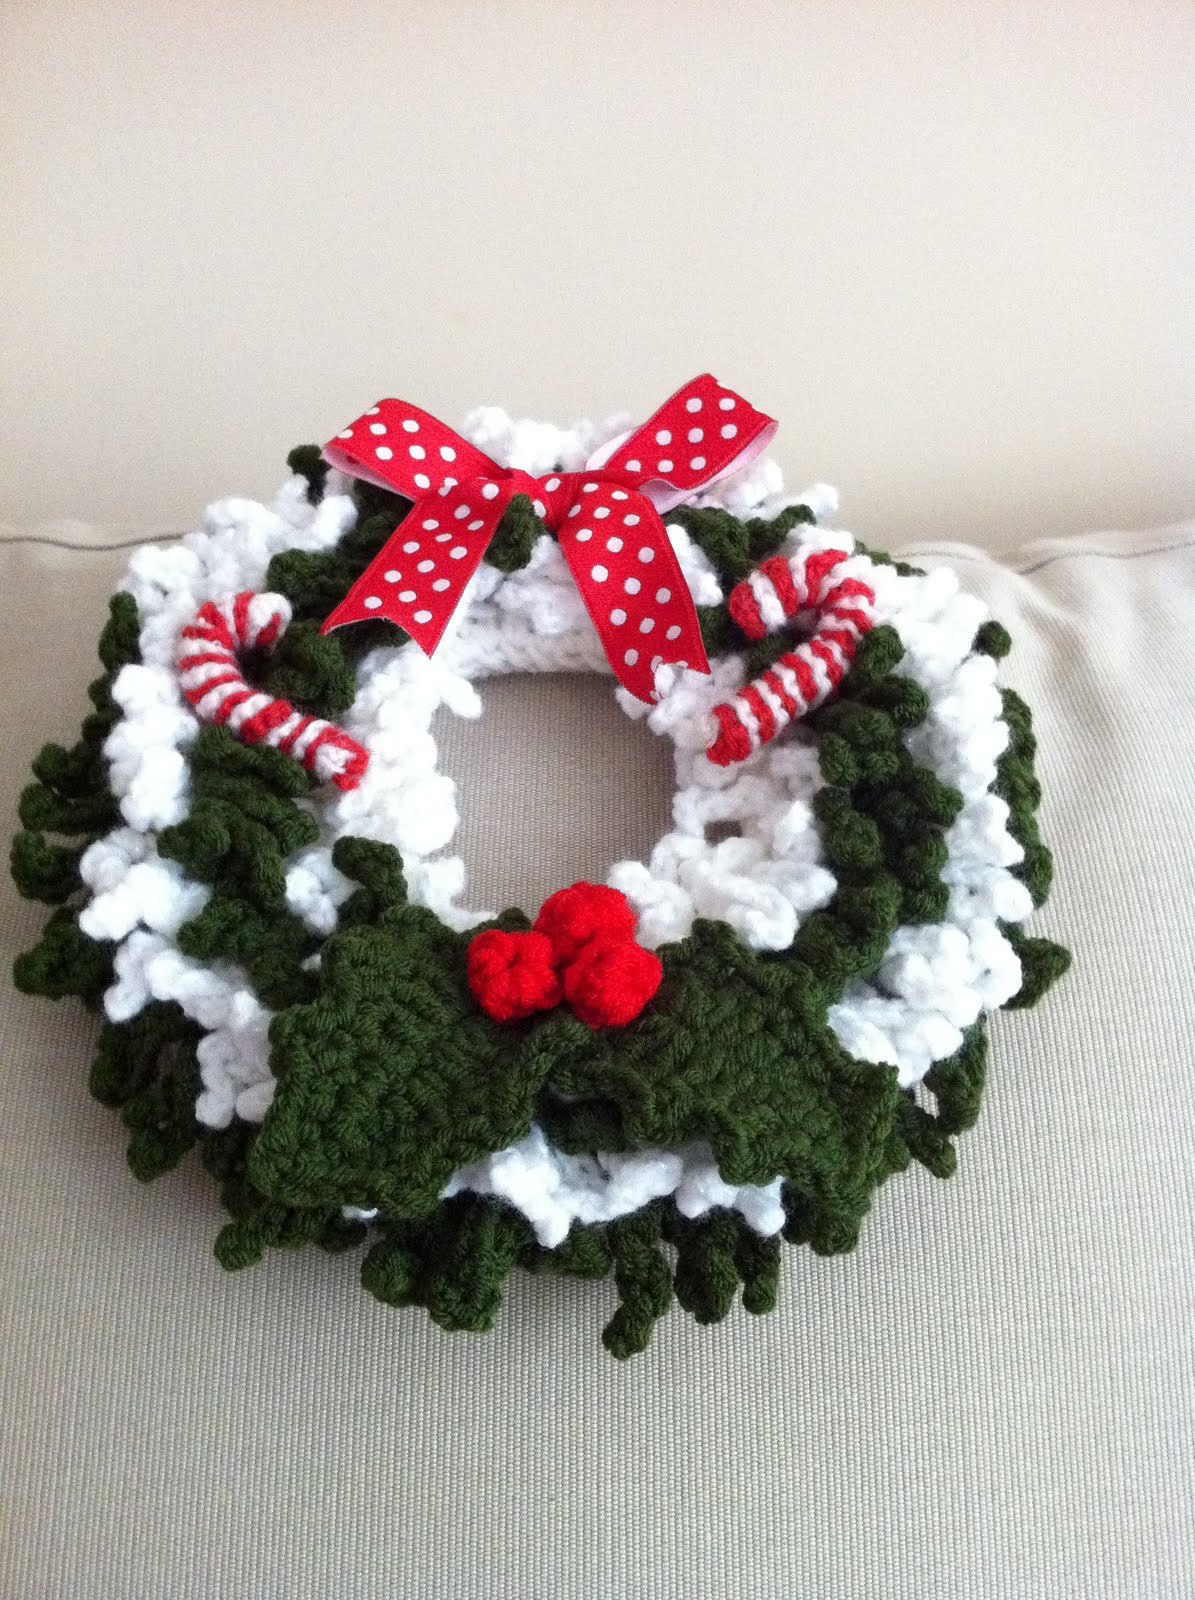 Christmas Crochet Patterns Awesome Handmade with Love by G Crochet Christmas Wreath 2011 Of Brilliant 49 Ideas Christmas Crochet Patterns